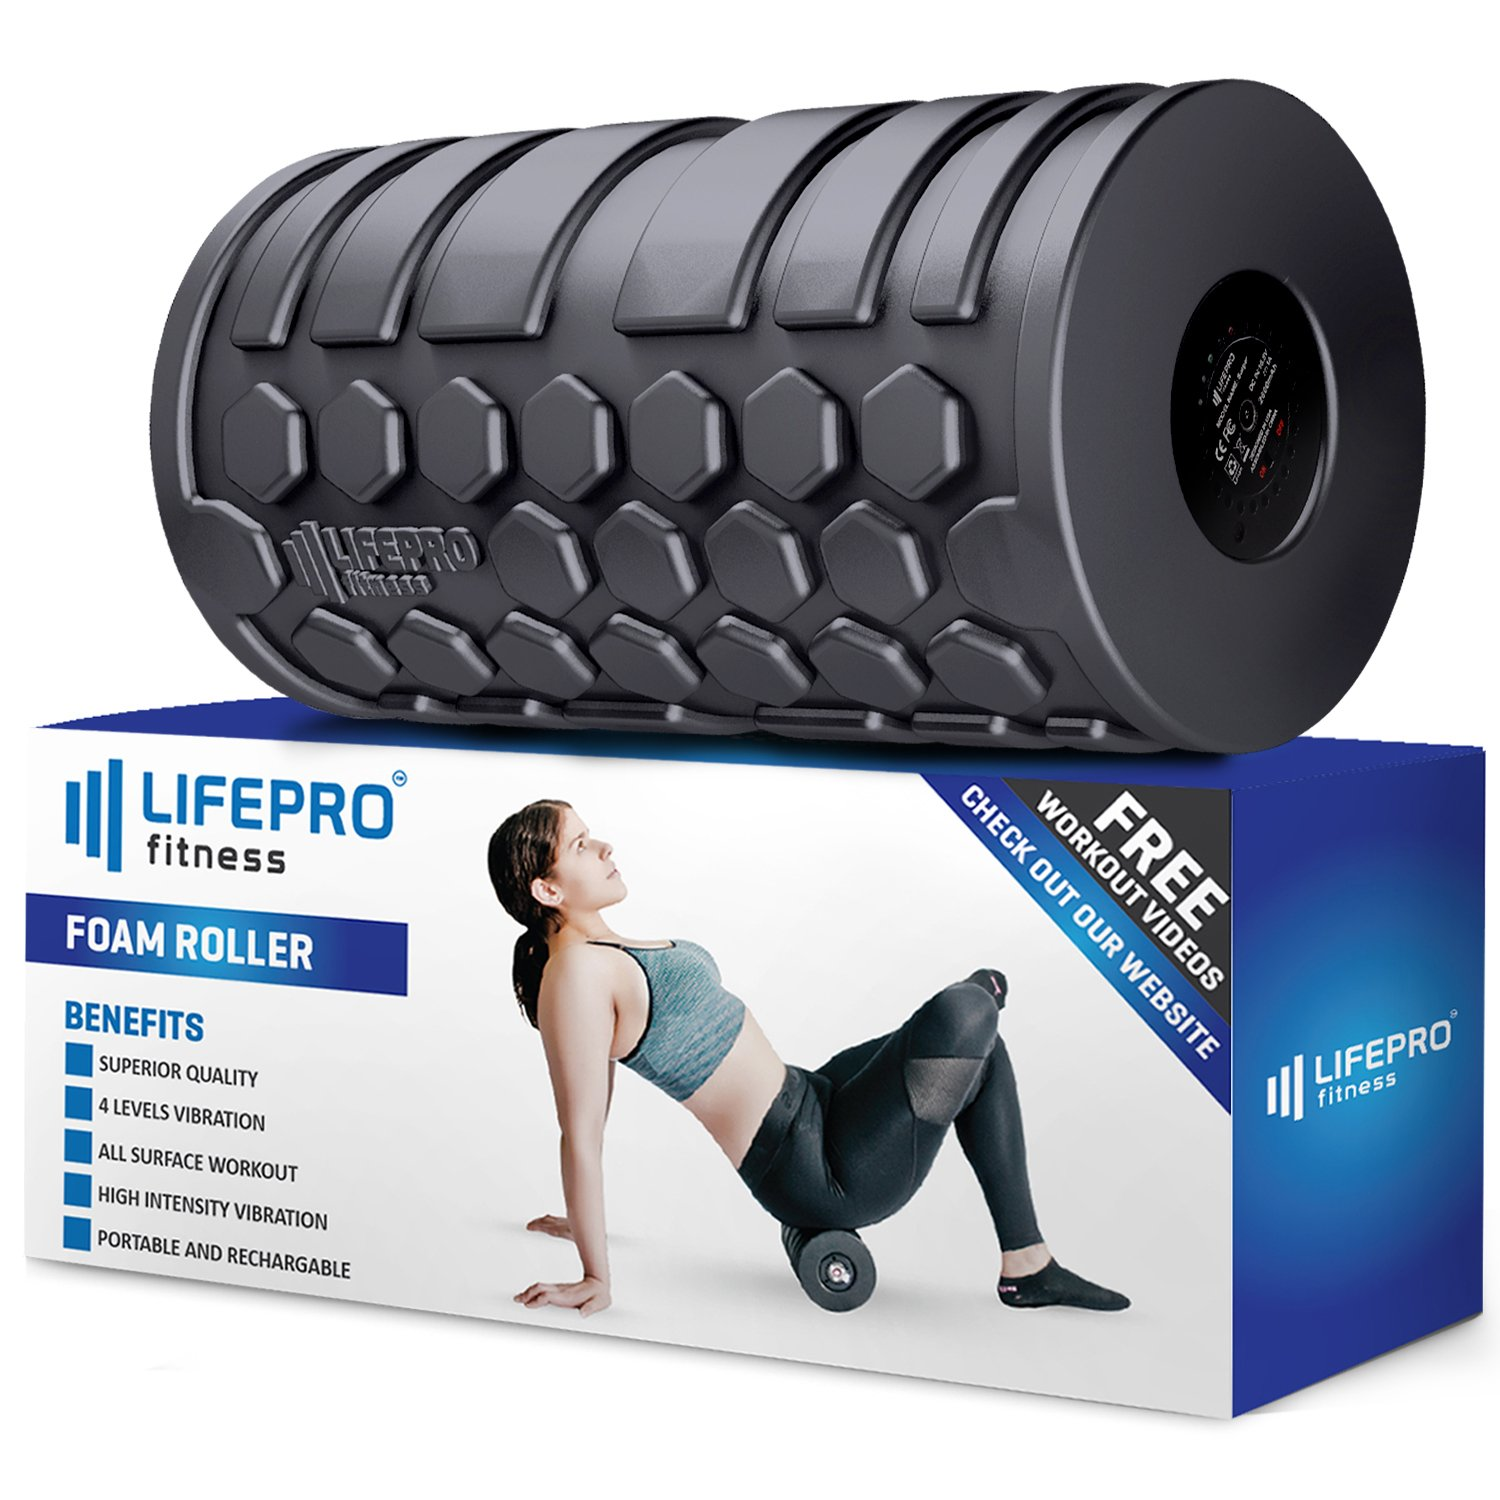 LifePro 4 Speed Vibrating Foam Roller - High Intensity Electric Vibration Massager with Bonus Manual Ebook & Videos for Deep Tissue Trigger Point Therapy, Sports Recovery, Mobility & Fitness Training